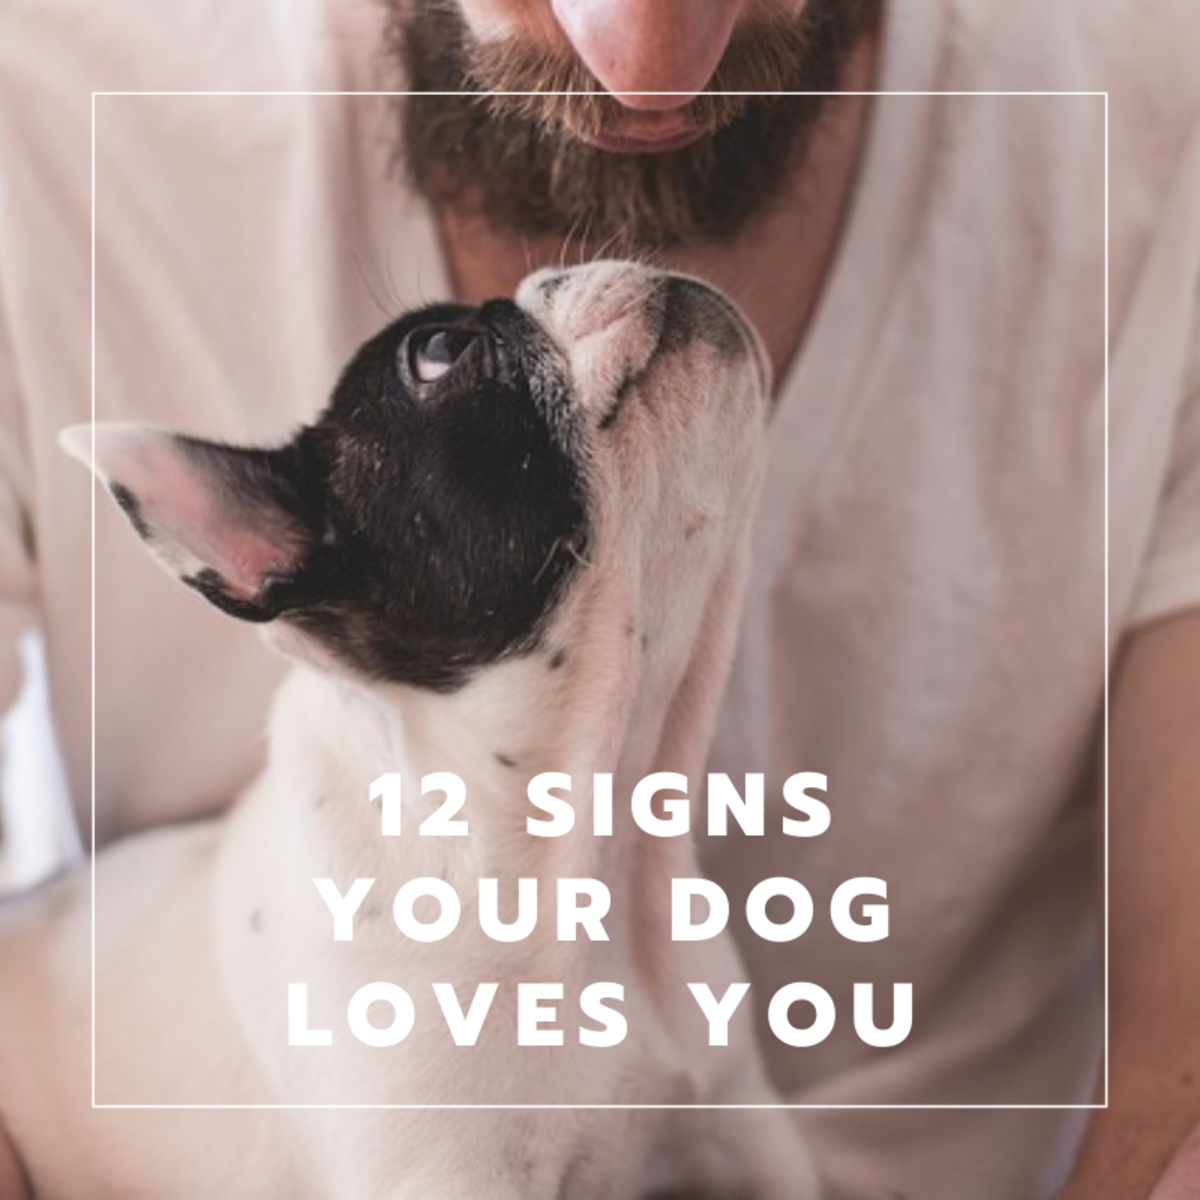 12 Signs Your Dog Loves You and How to Be the Person Your Dog Loves